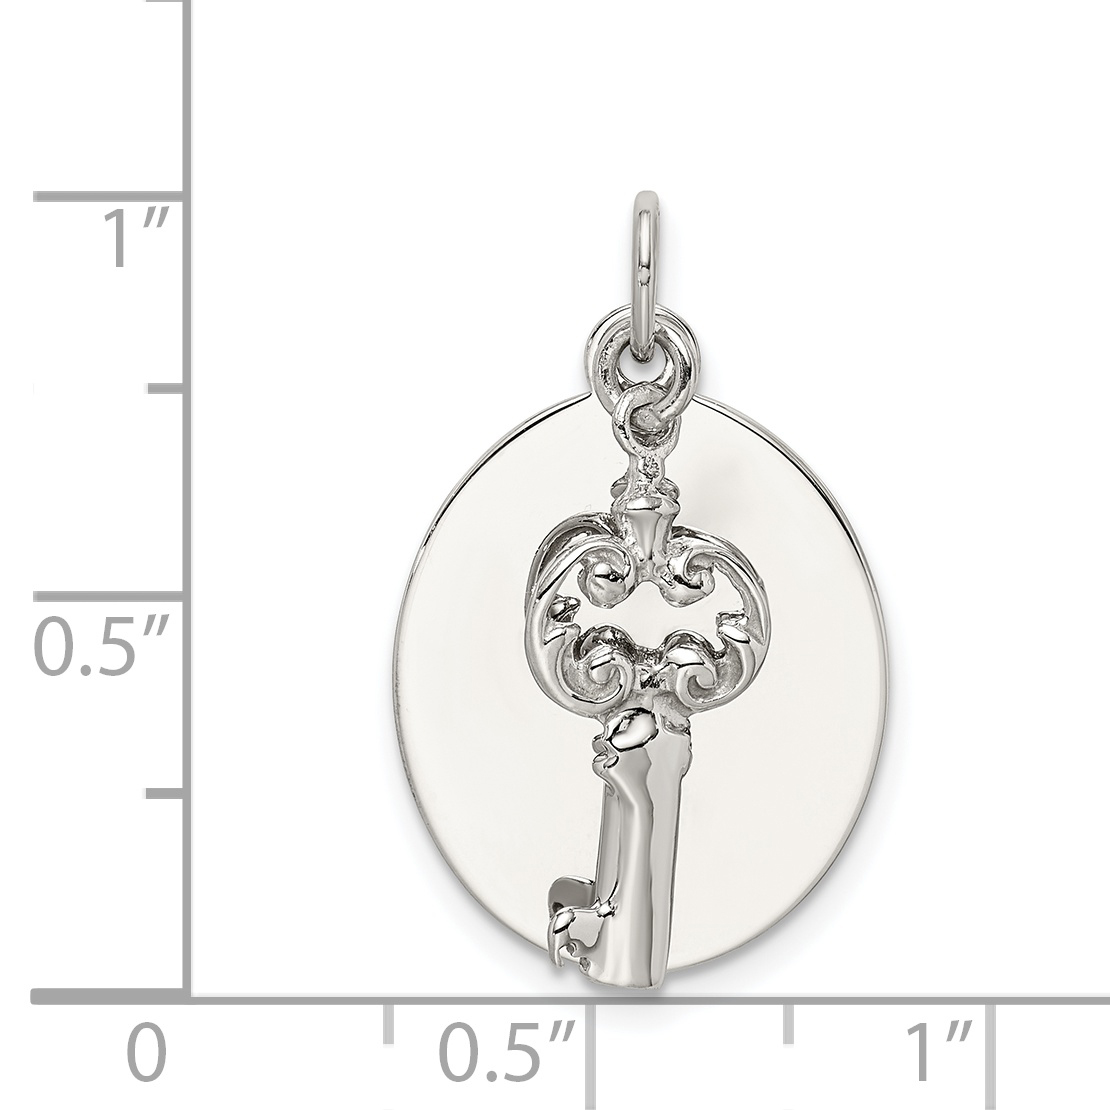 925 Sterling Silver Key Pendant Charm Necklace Fine Jewelry Gifts For Women For Her - image 1 de 2